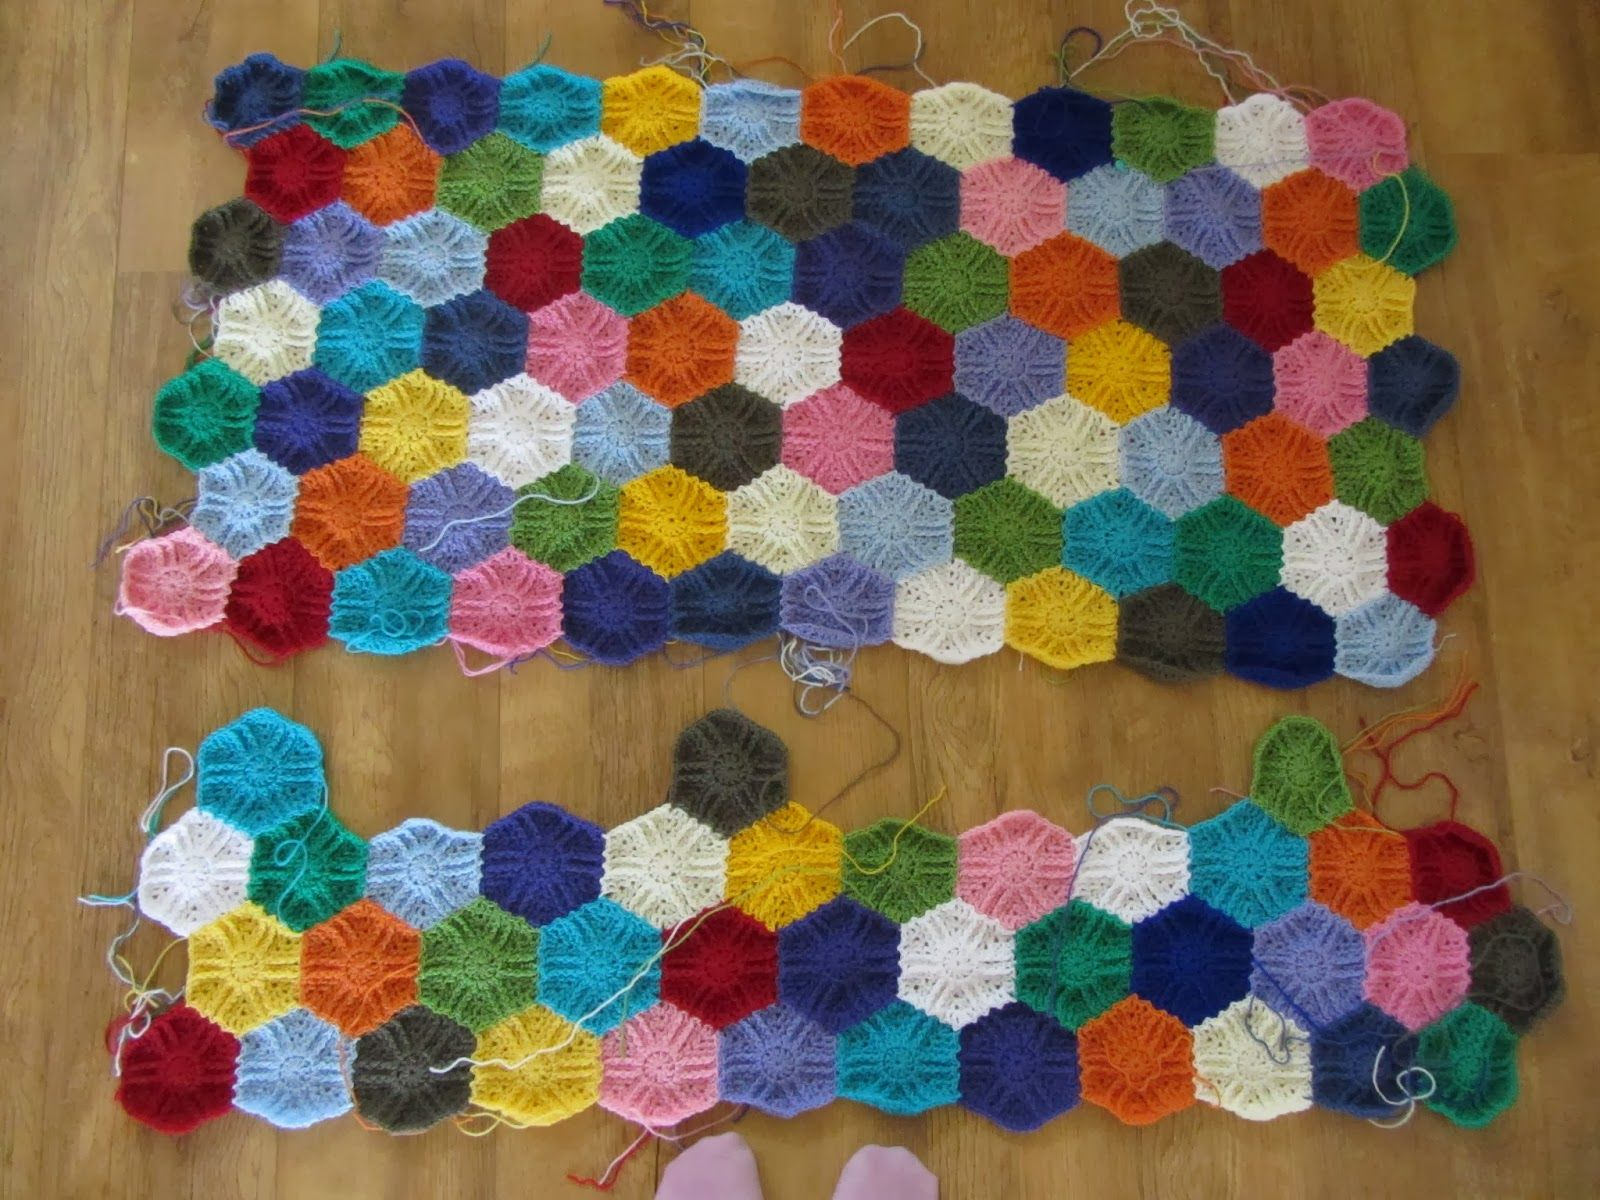 Busy fingers, busy life...: Hexagon Love!